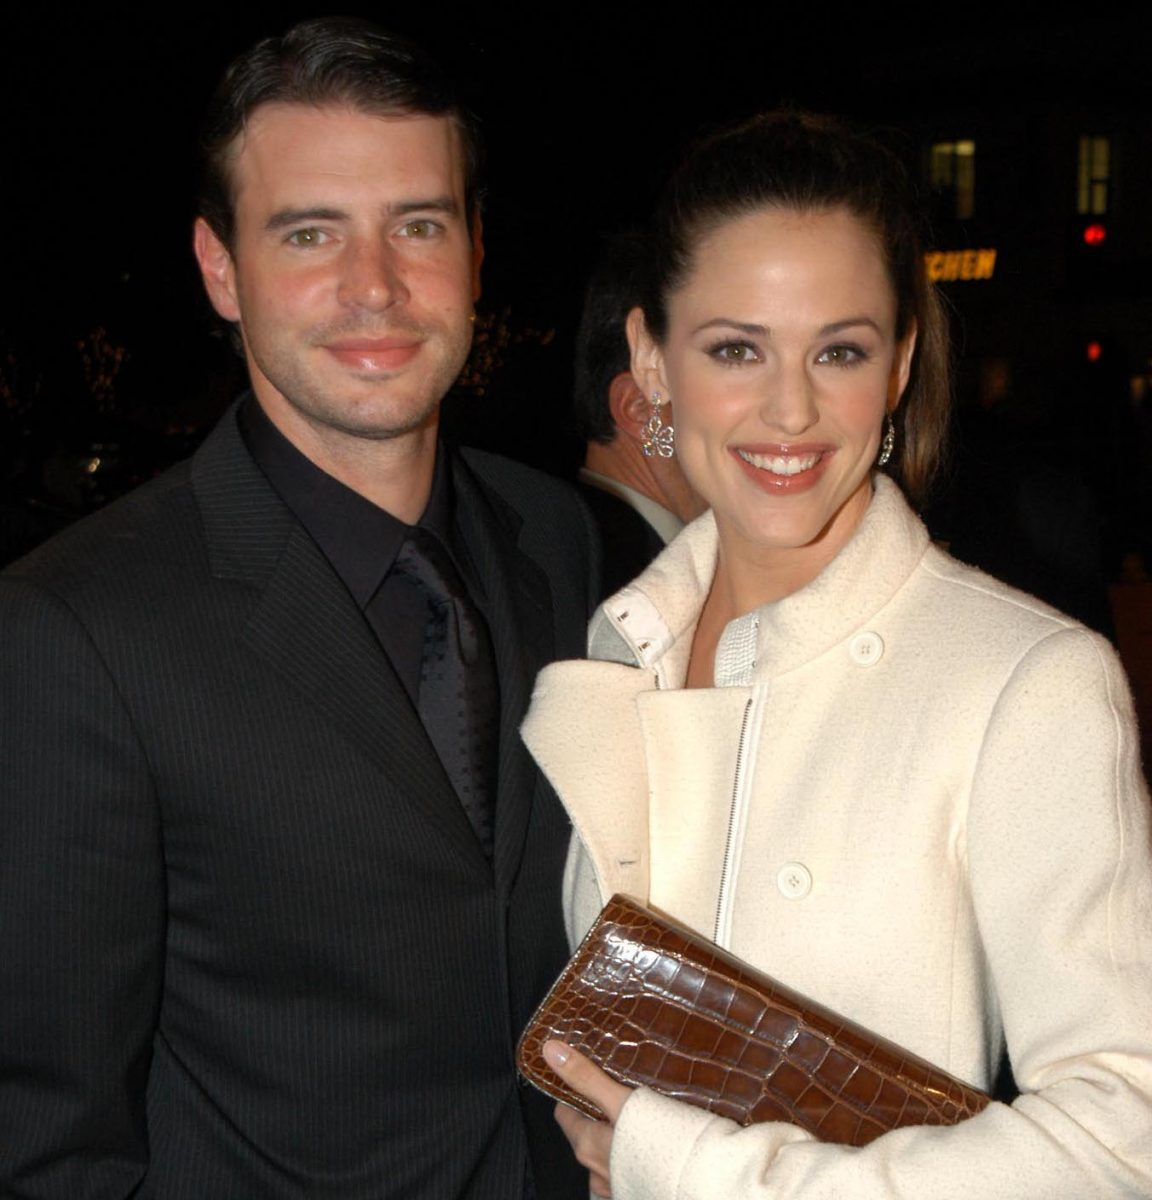 Scott Foley and Jennifer Garner attending the DreamWorks Premiere of 'Catch Me If You Can'